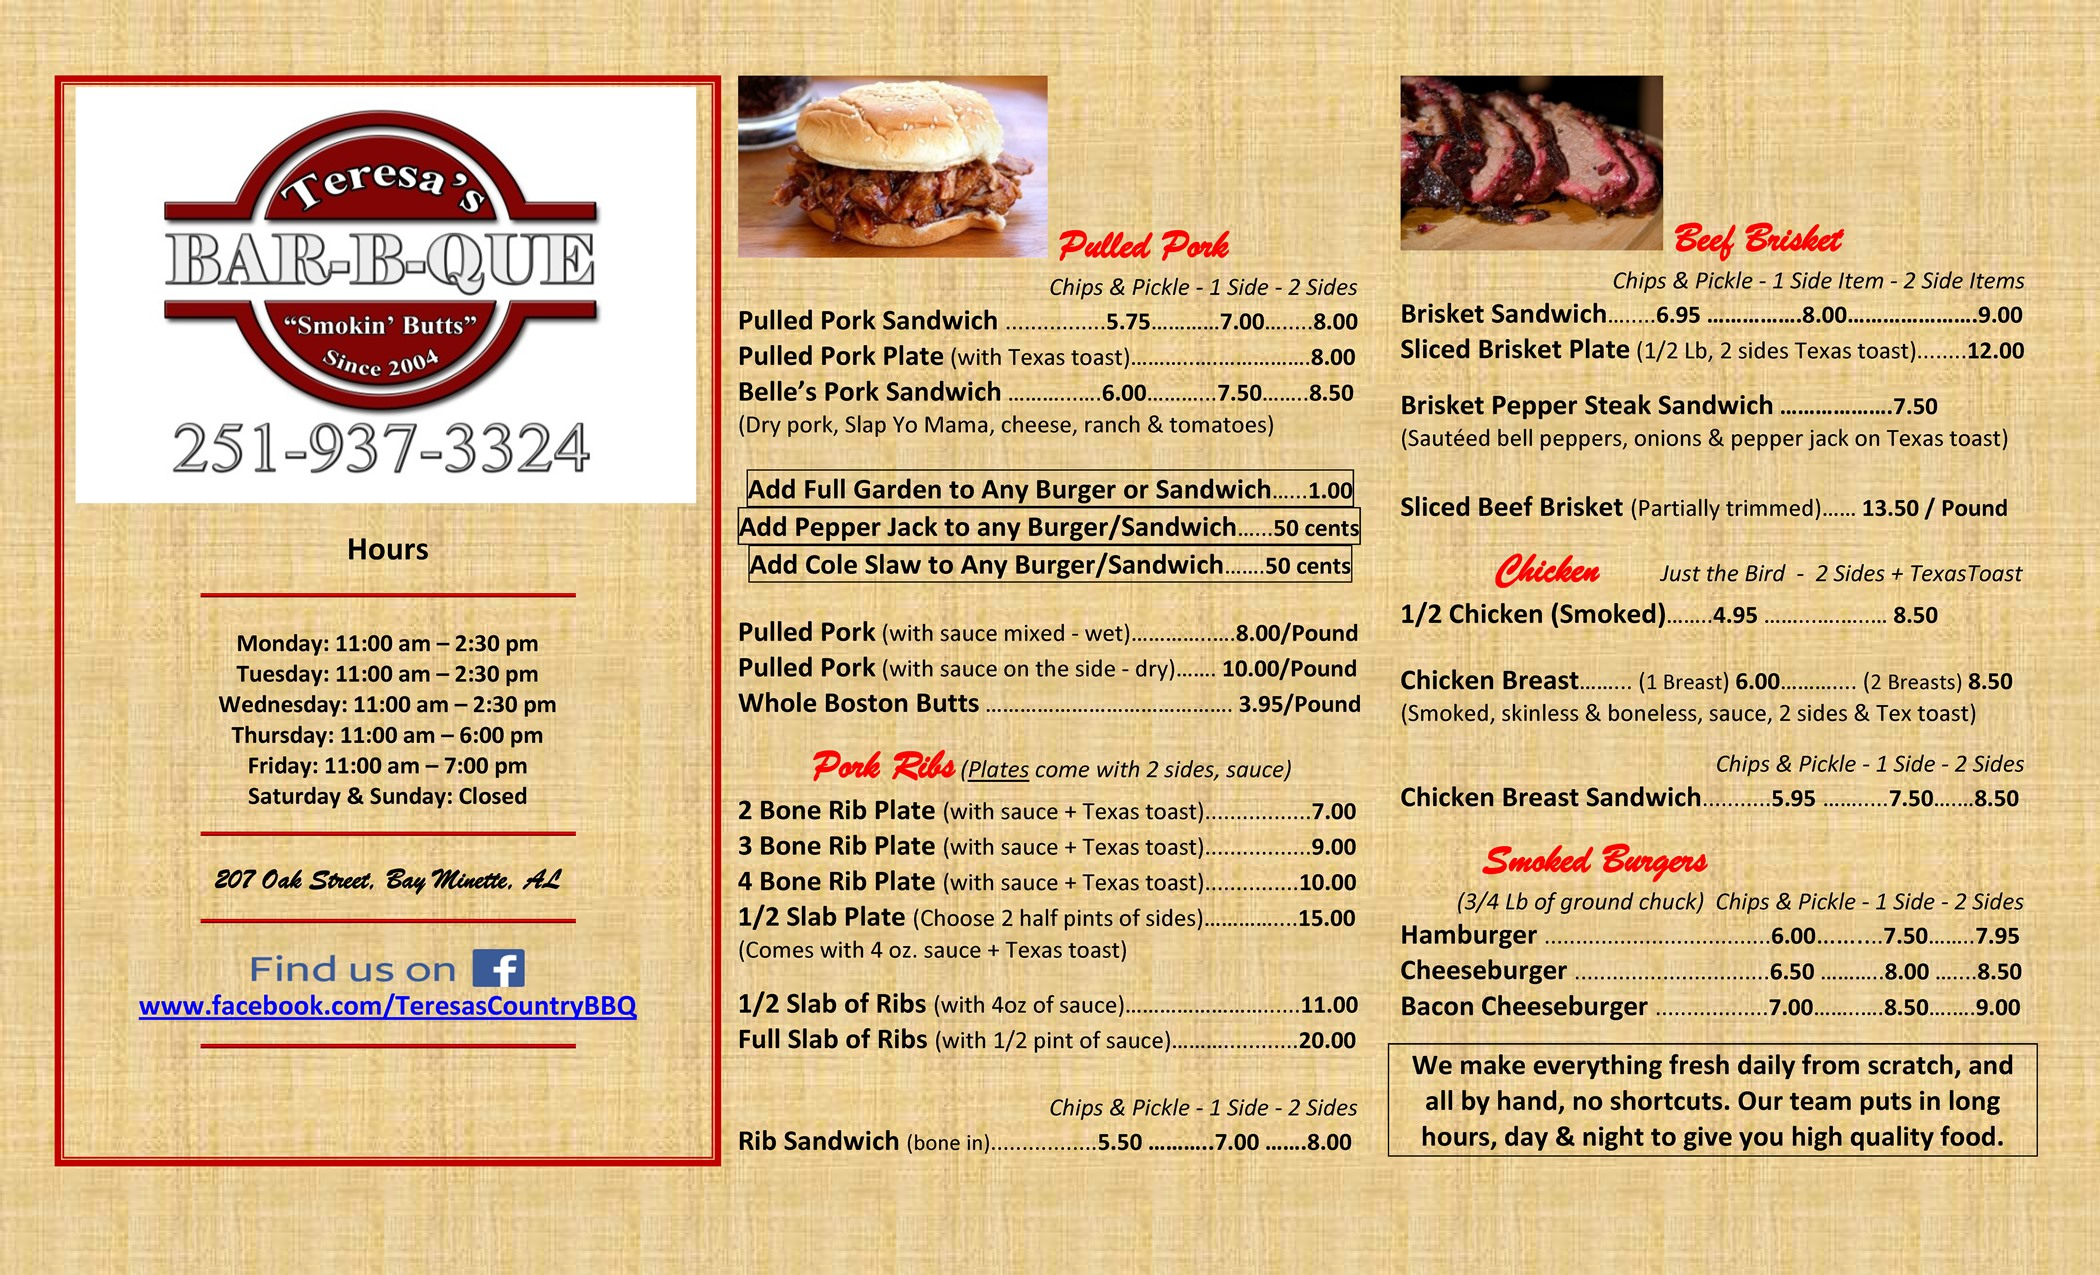 https://alabama-travel.s3.amazonaws.com/partners-uploads/photo/image/5735ec8a6b5268287e000031/teresa_s_bbq_menu___restaurant_in_bay_minette_page_1.jpg